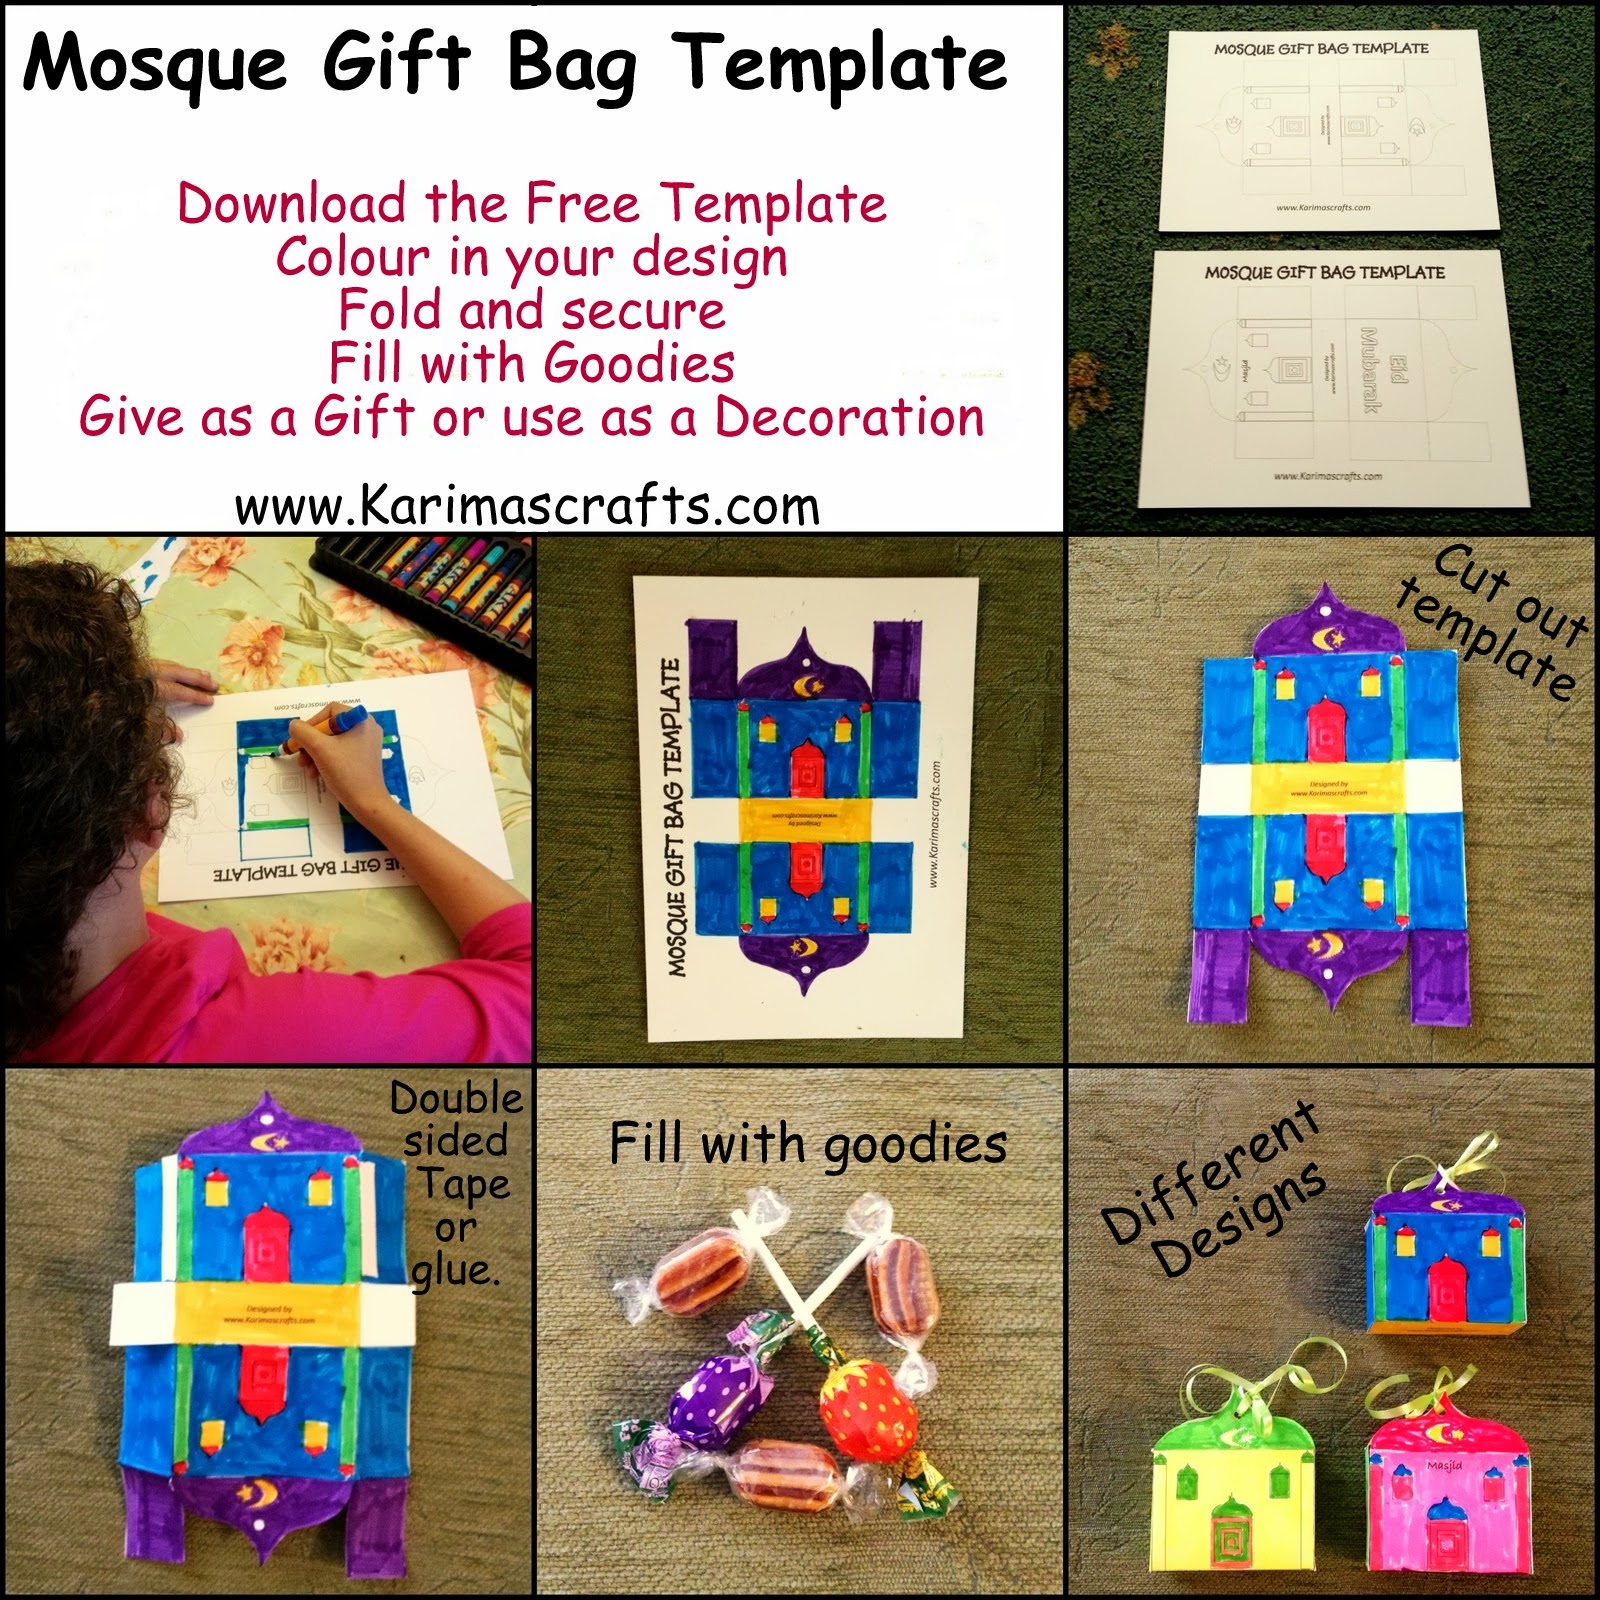 mosque gift bag template ramadan crafts islam muslim